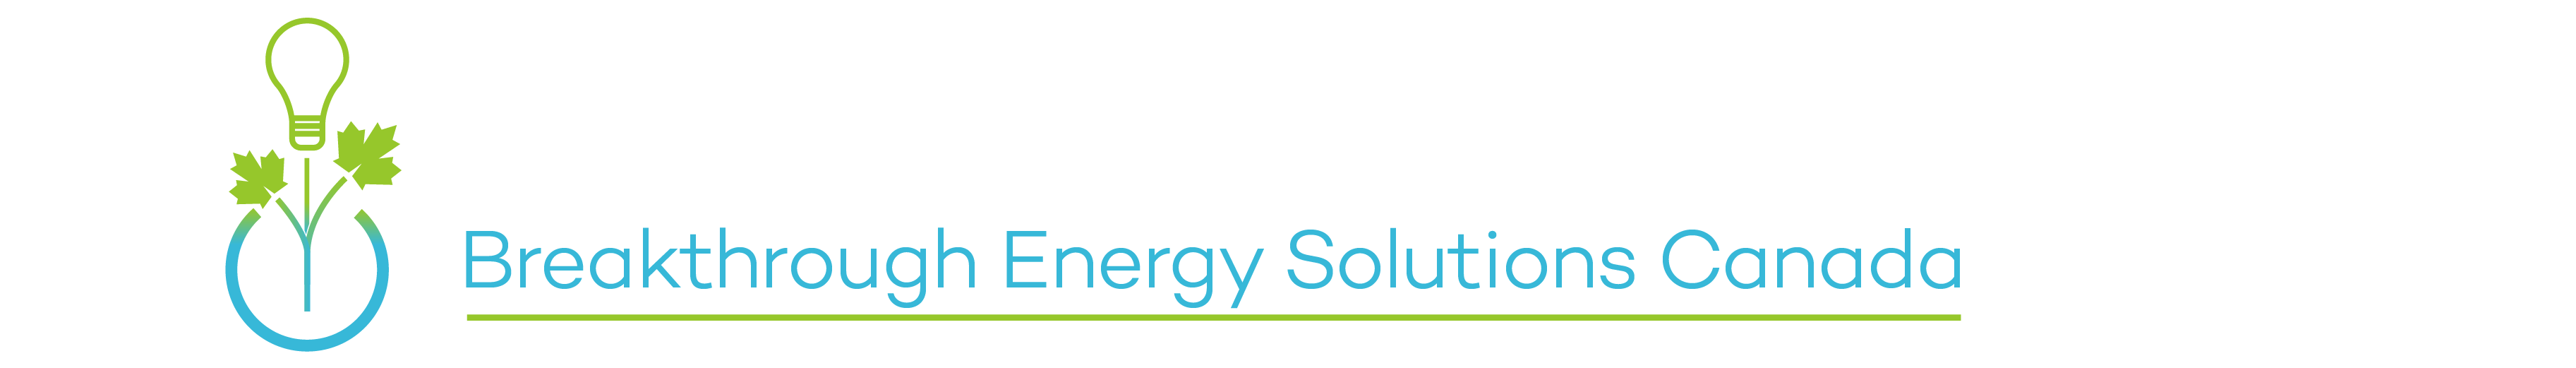 Breakthrough Energy Solutions Canada banner